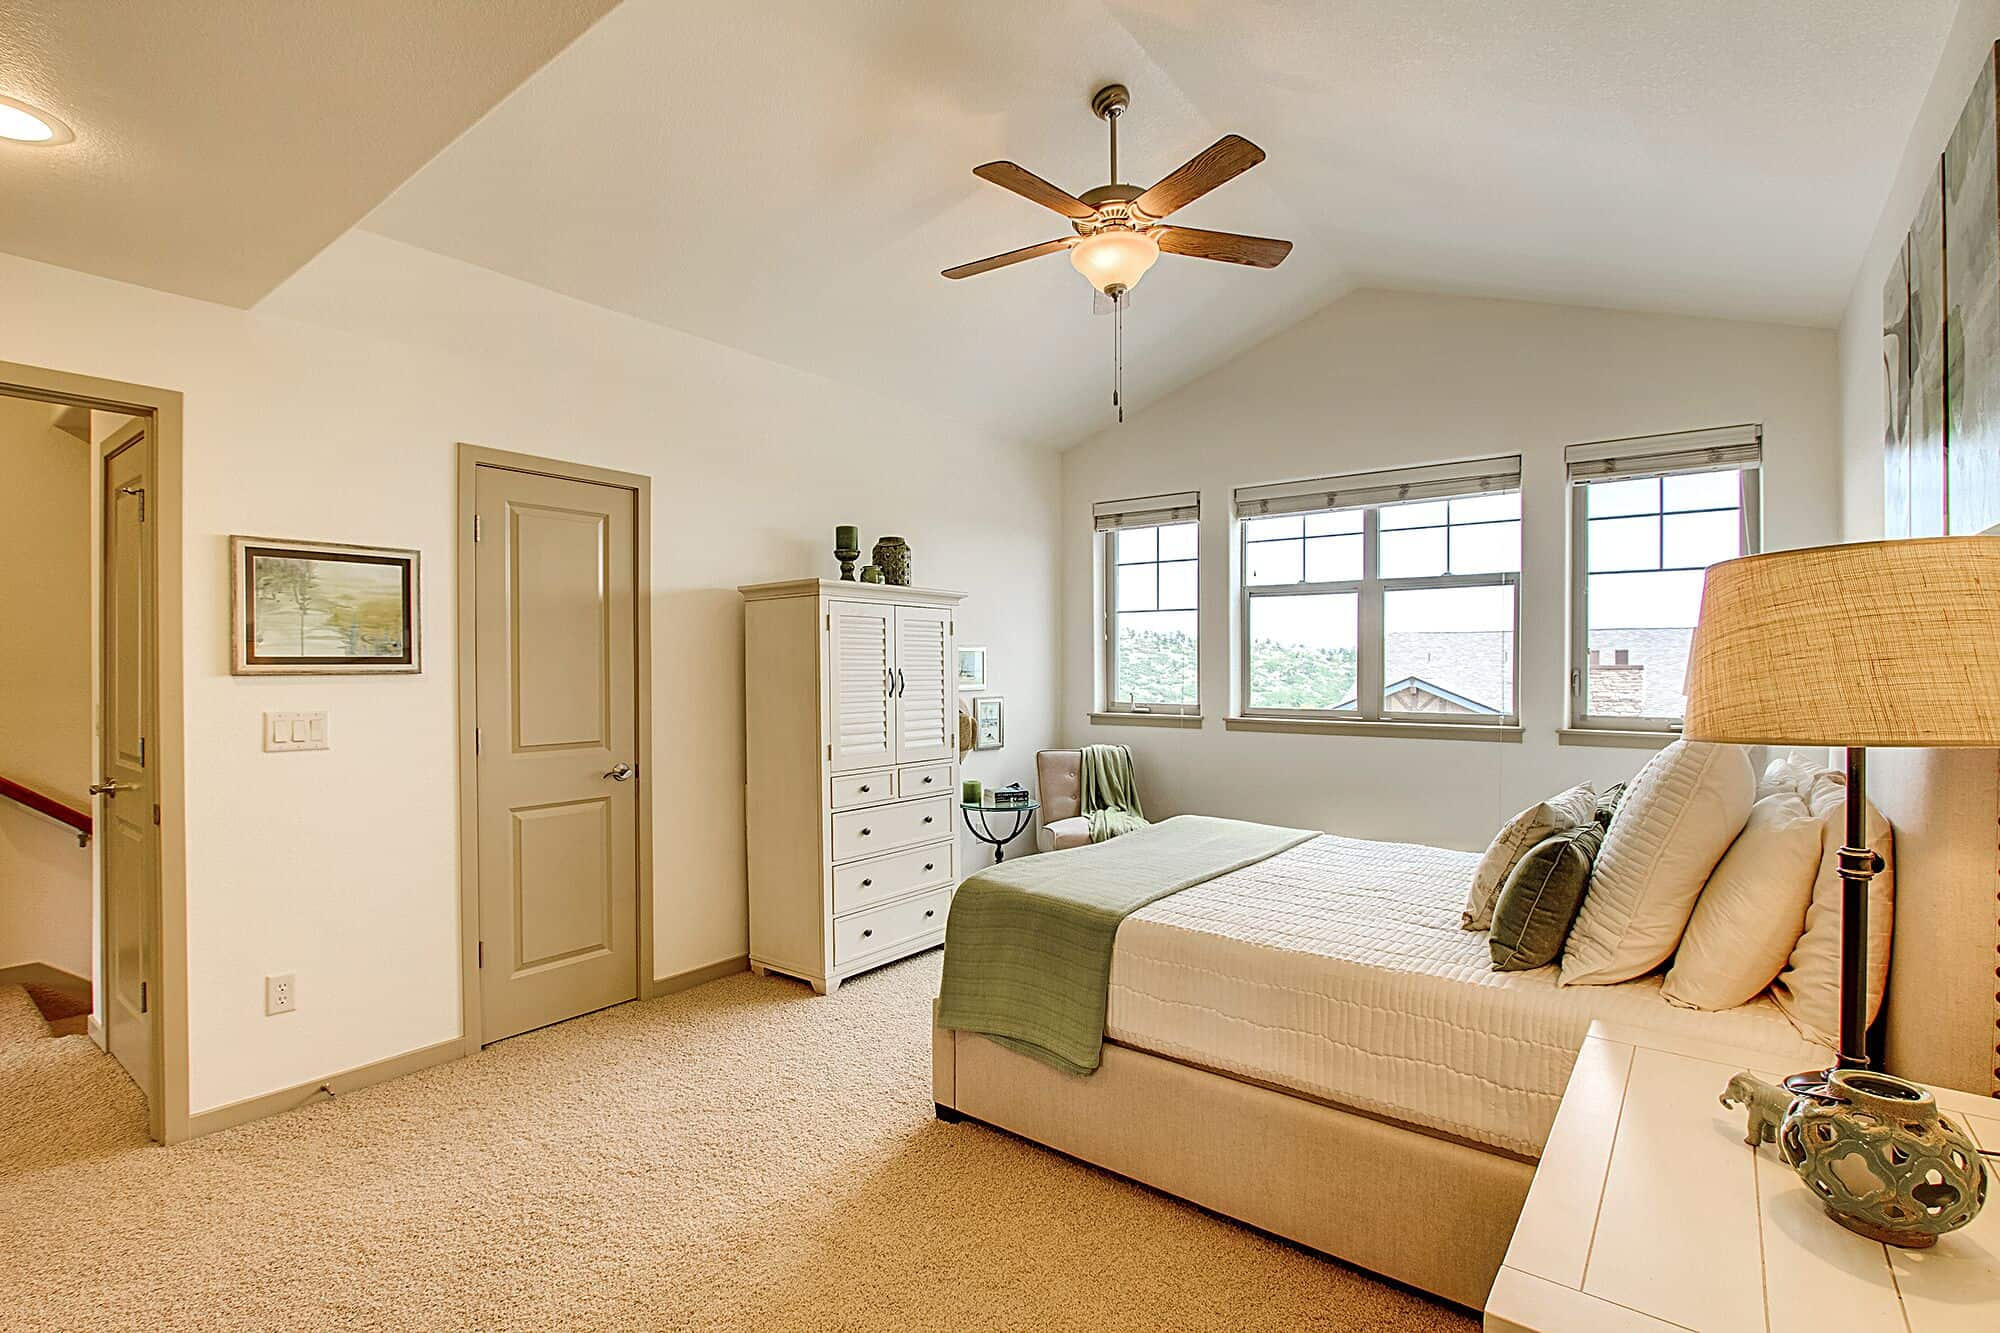 Master Bedroom with Walkin Closet and View Windows